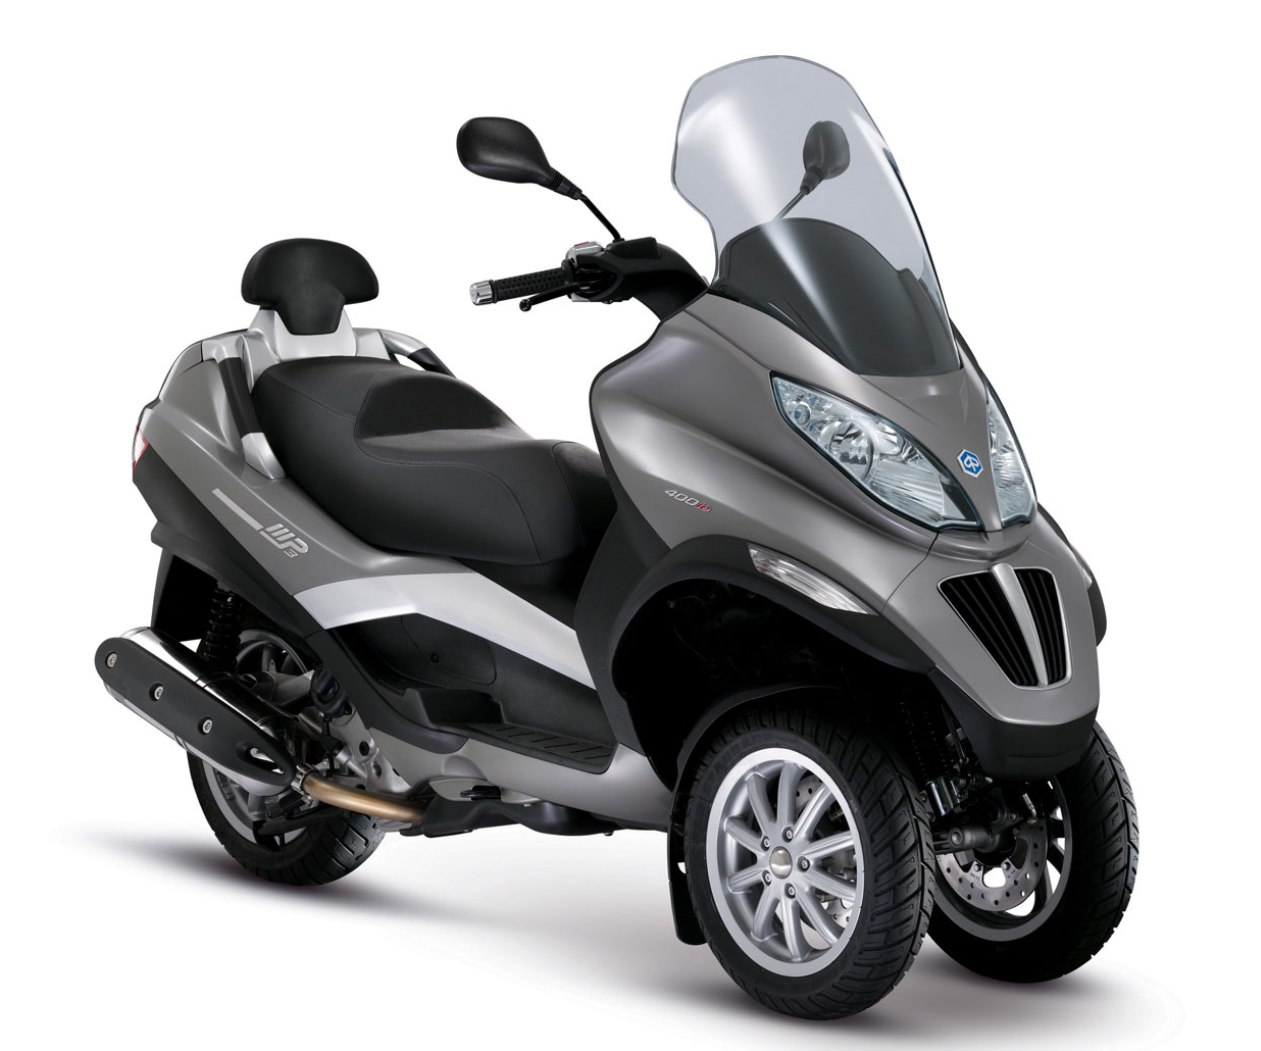 2011 piaggio mp3 400 new motorcycle. Black Bedroom Furniture Sets. Home Design Ideas